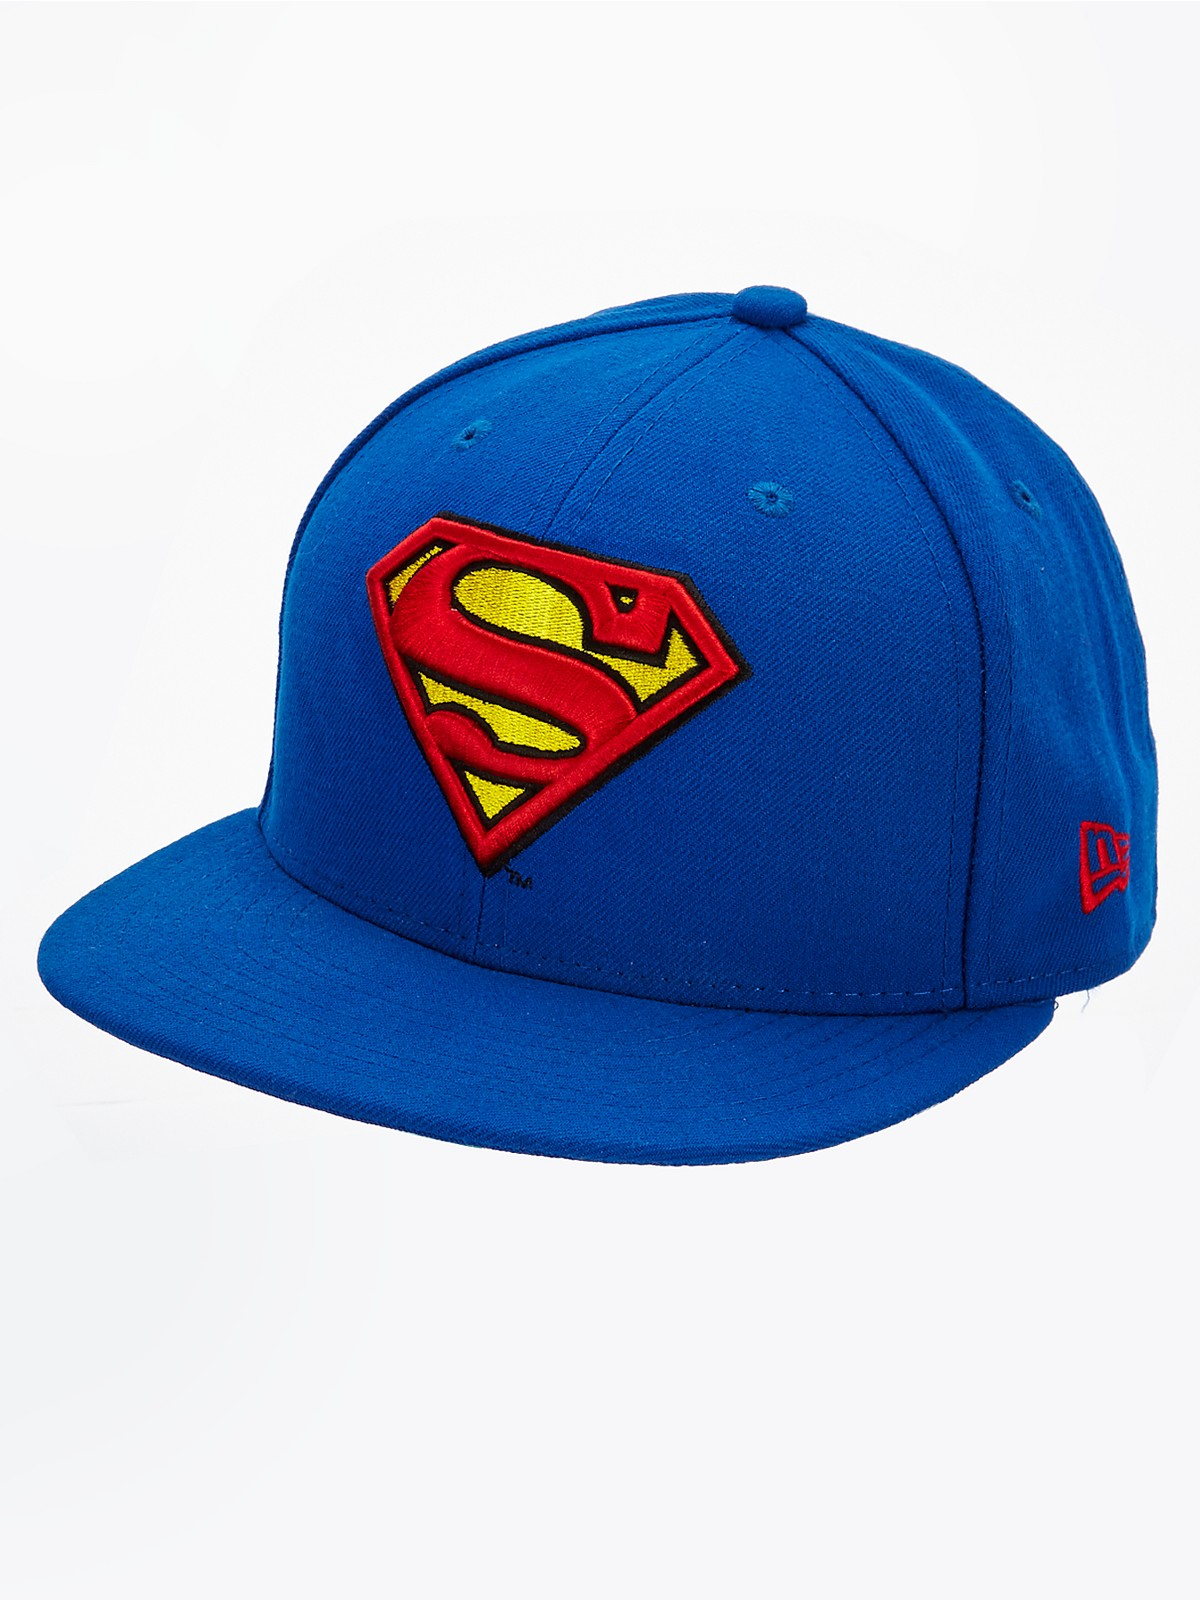 New Era 59fifty Fitted Spiderman Cap In Blue For Men Lyst